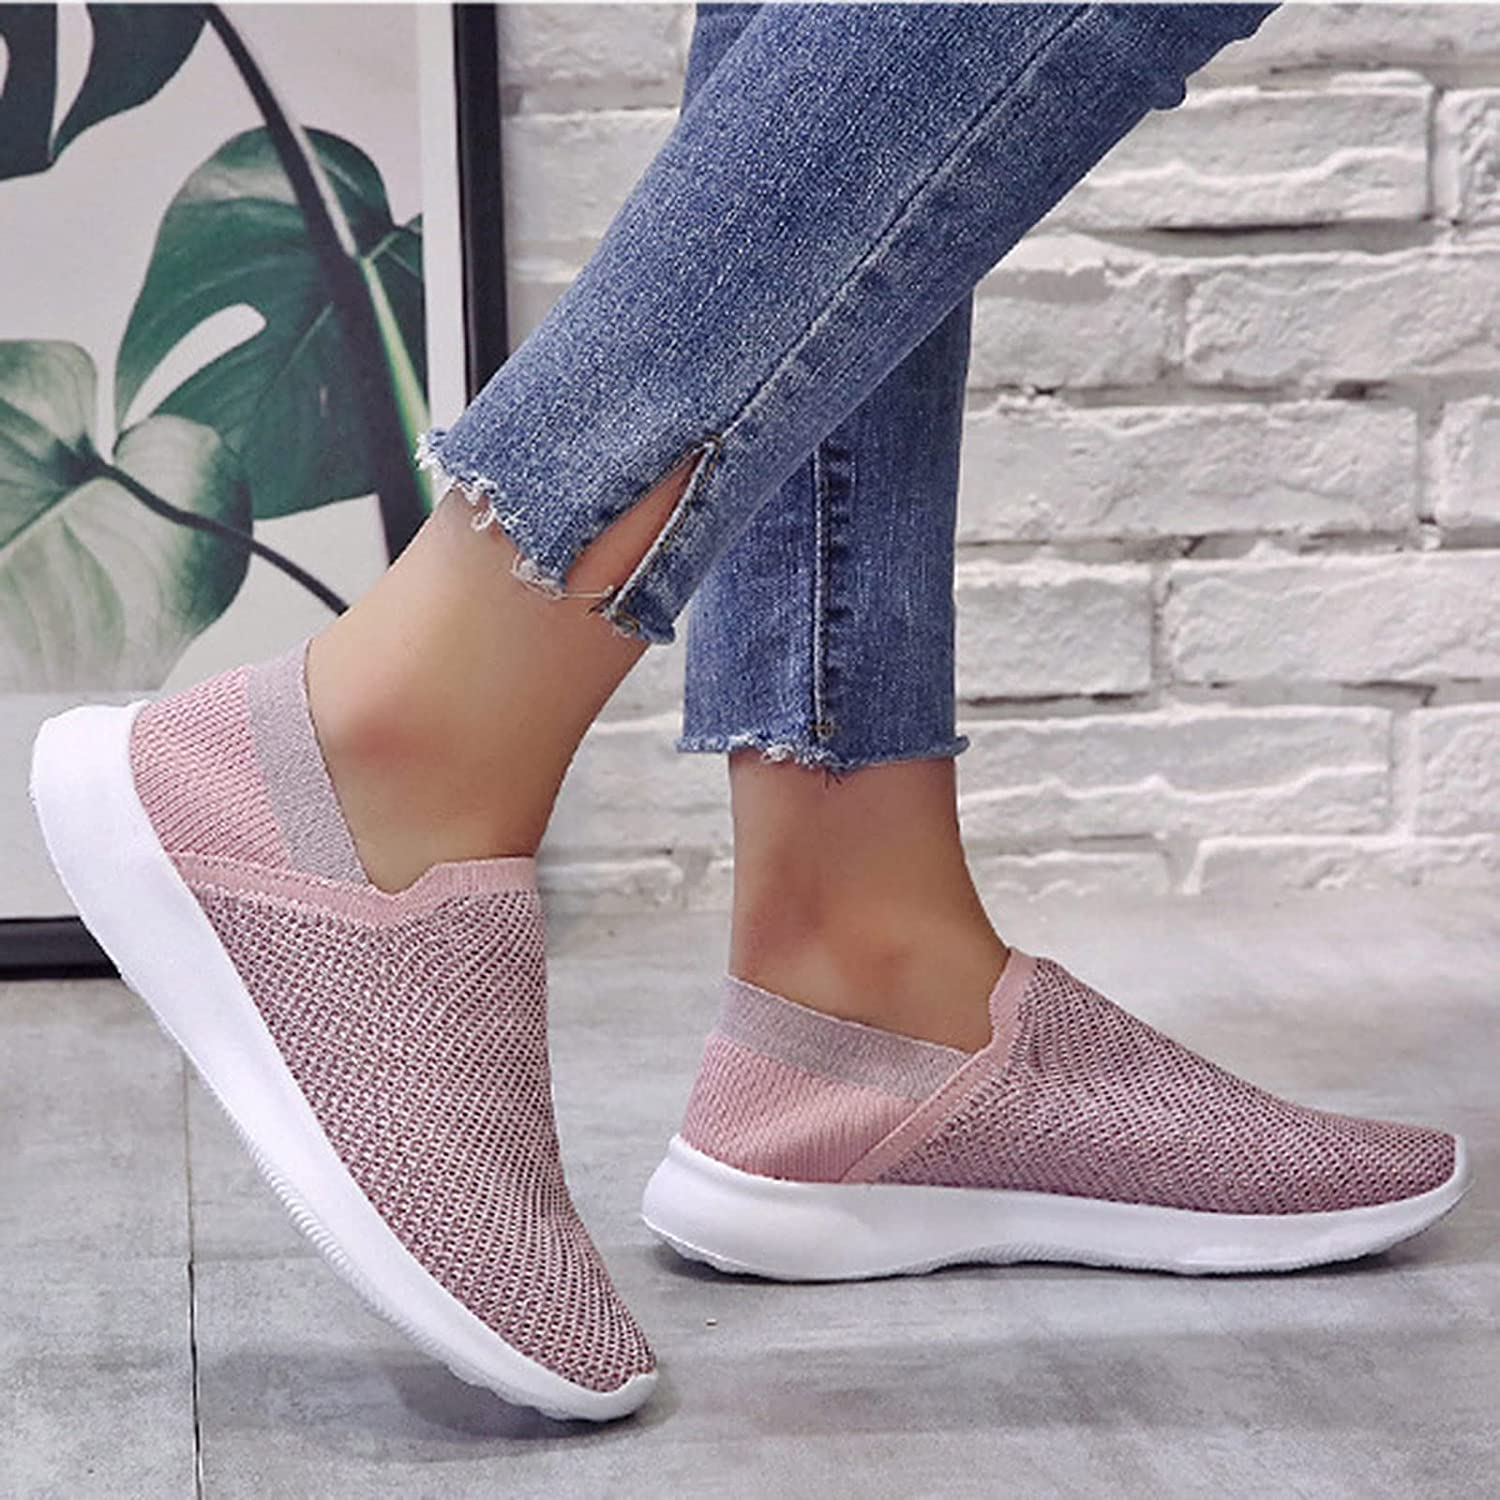 Niceast Women's Sneakers Breathable Mesh Walking Shoes Slip on Sock Sneakers Fashion Casual Outdoor Sports Running Shoes